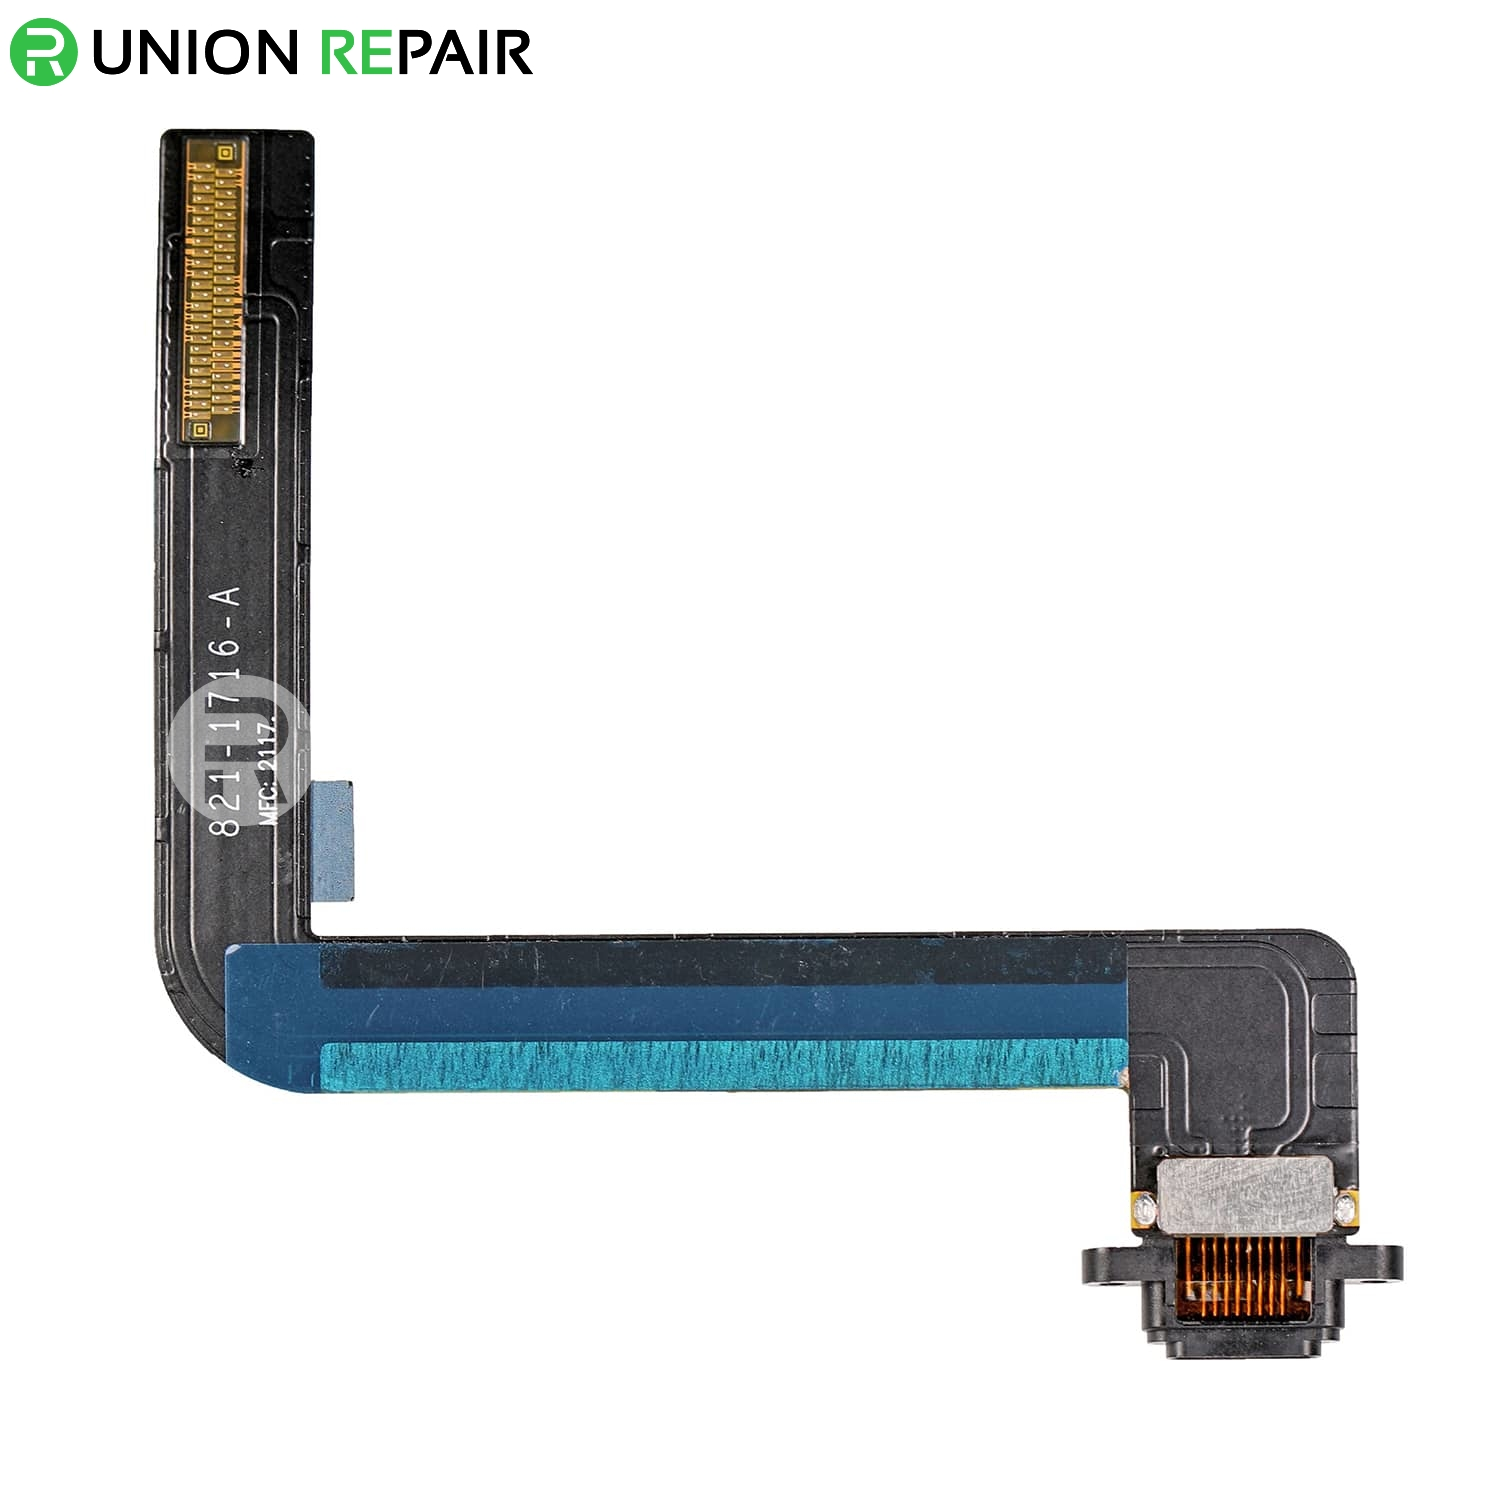 Replacement for iPad 6 Dock Connector Flex Cable - Black